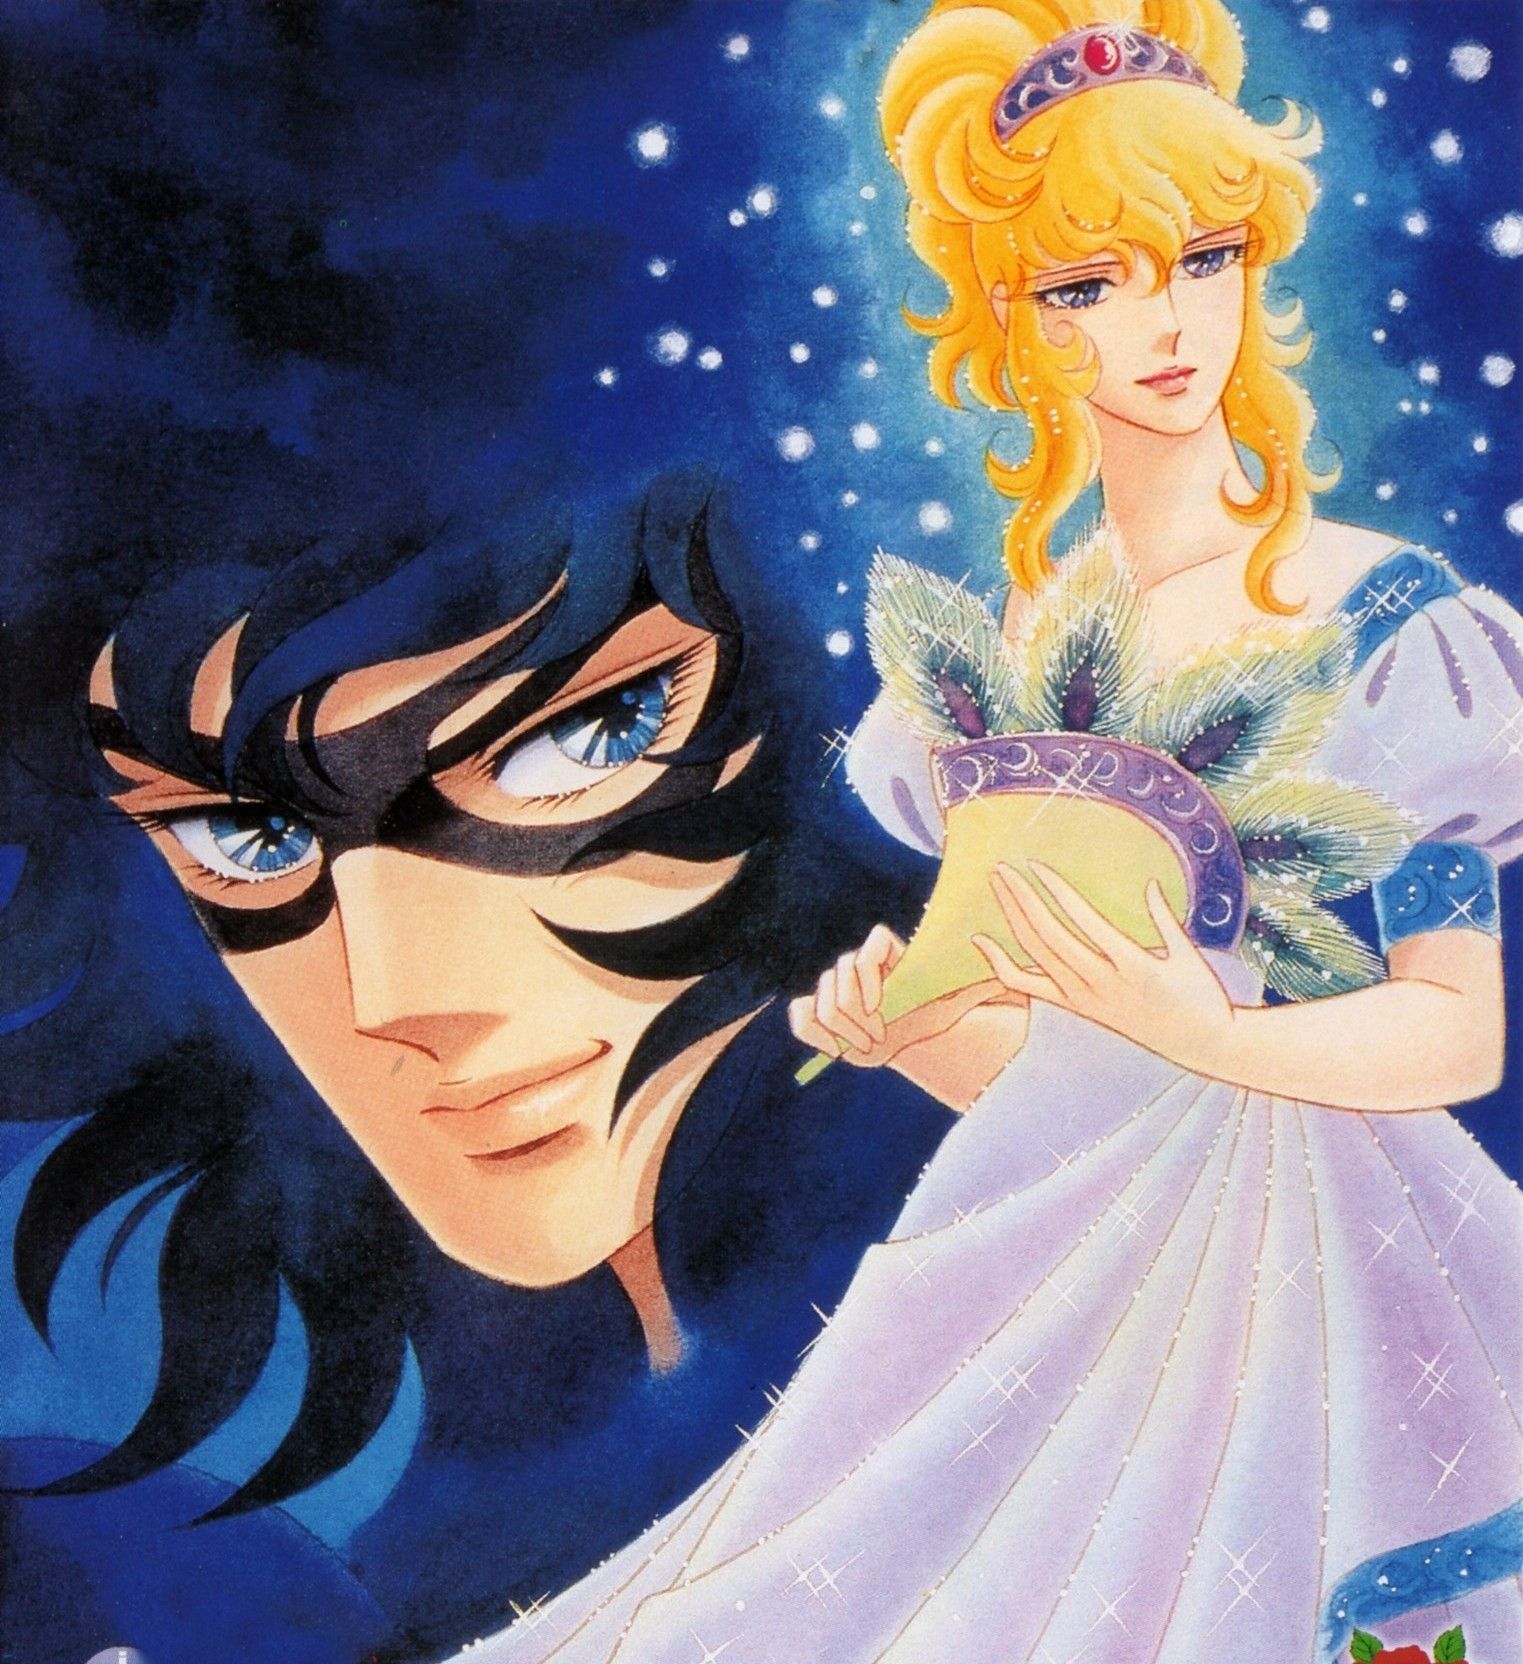 The Rose Of Versailles Episode 40: 22 Best Lady Oscar Images On Pinterest